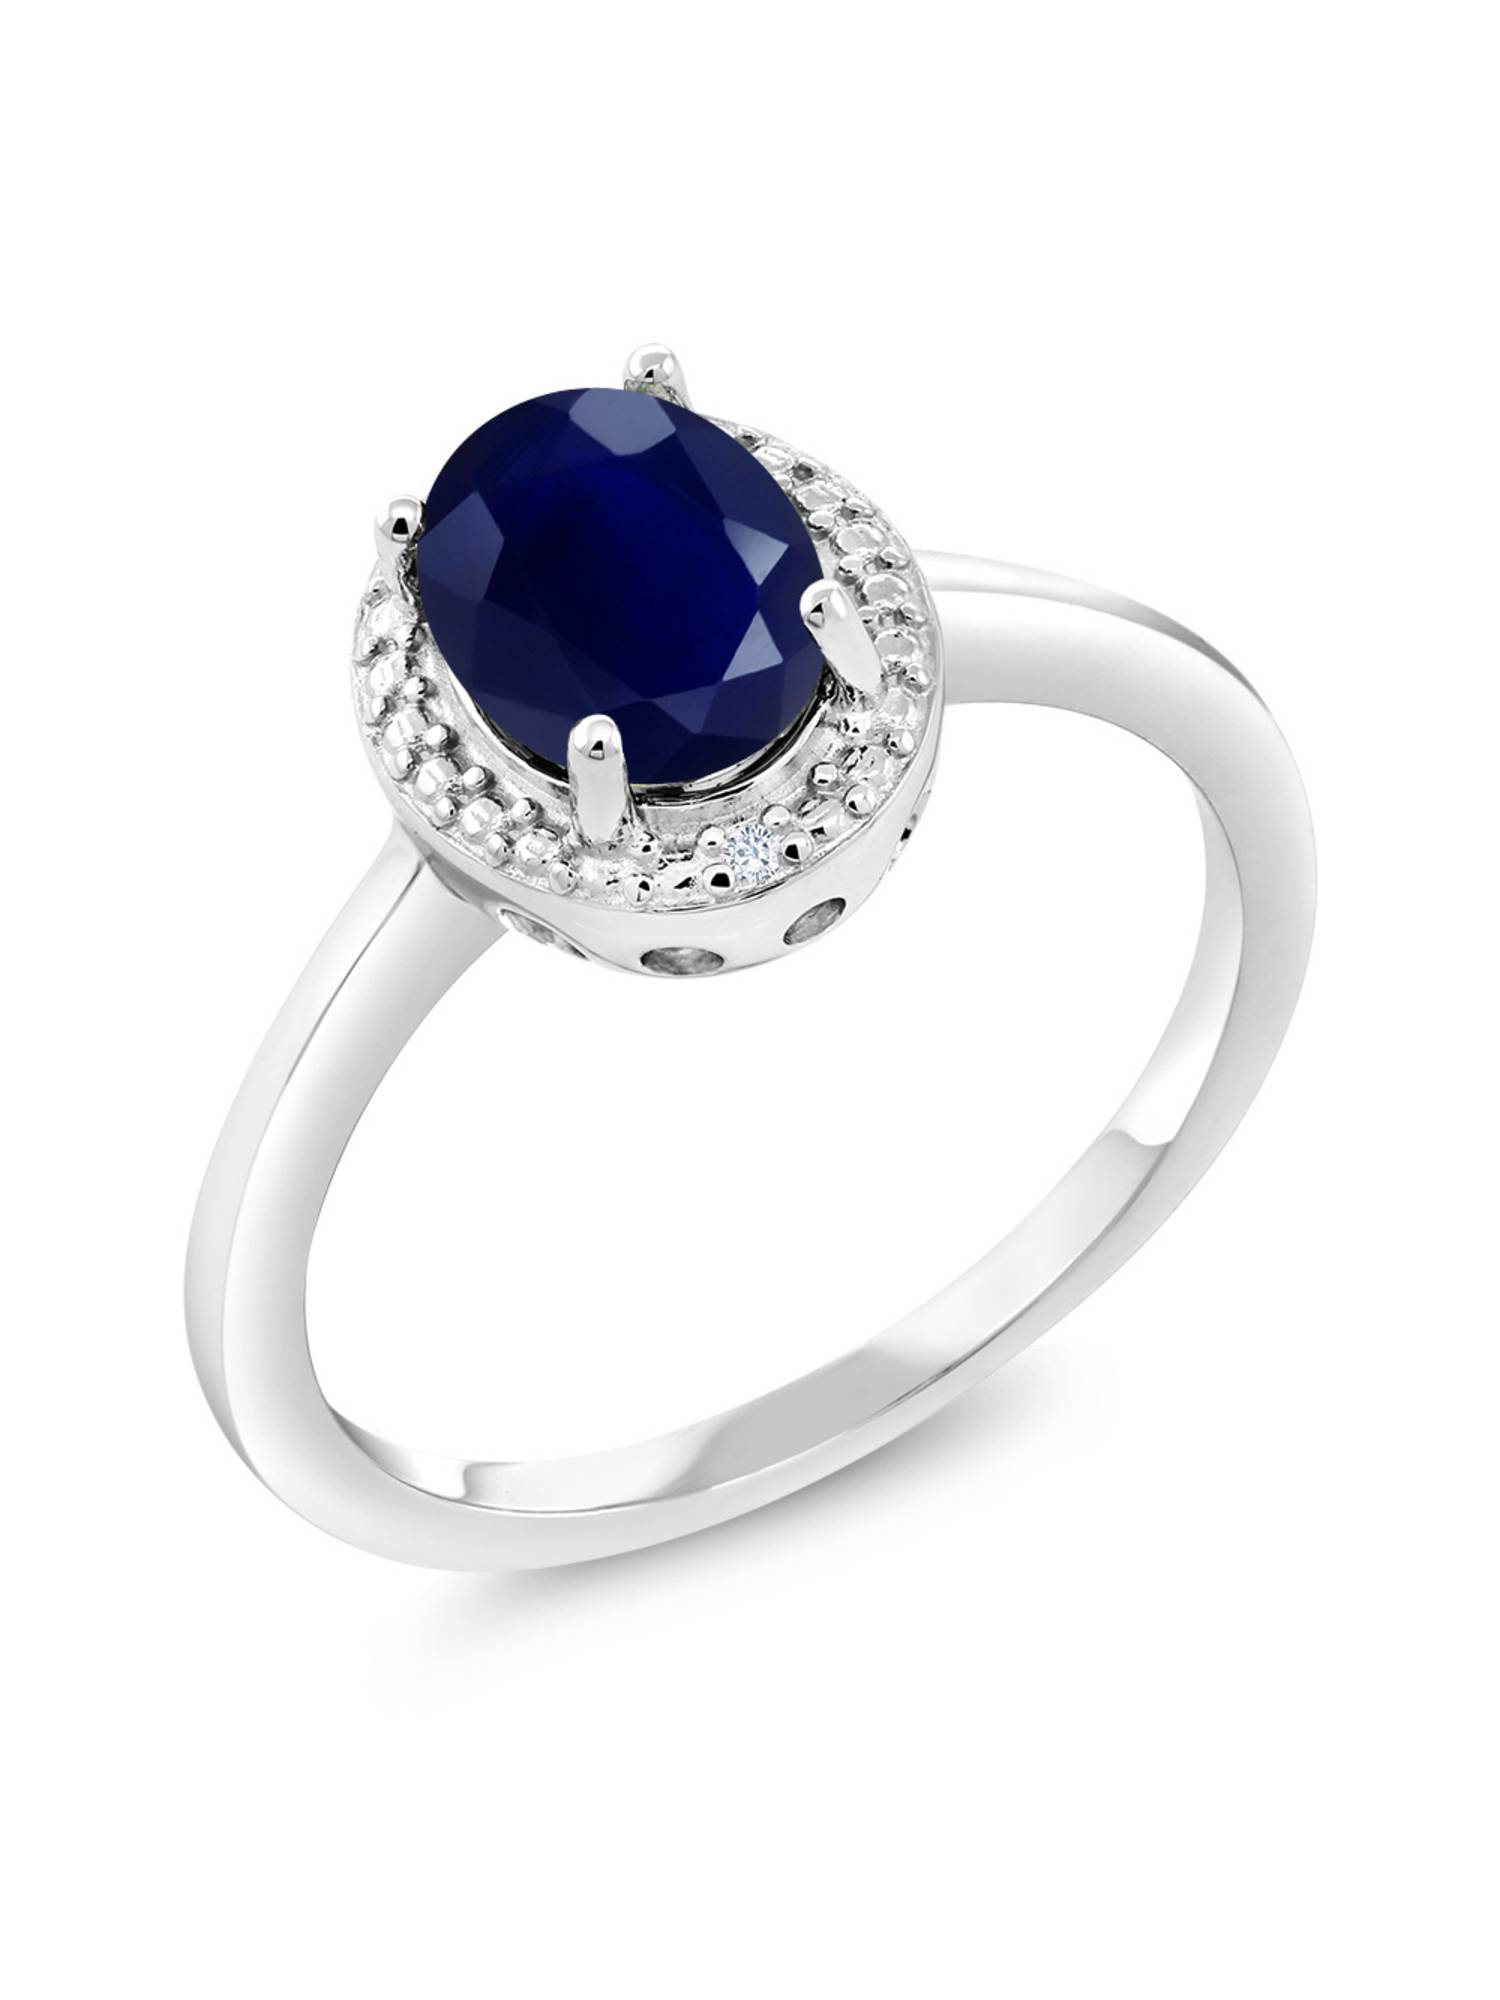 FINE 925 STERLING SILVER LADIES DESIGNER RING W// 3 CTS DIAMOND//SIZE 5,6,7,8,9